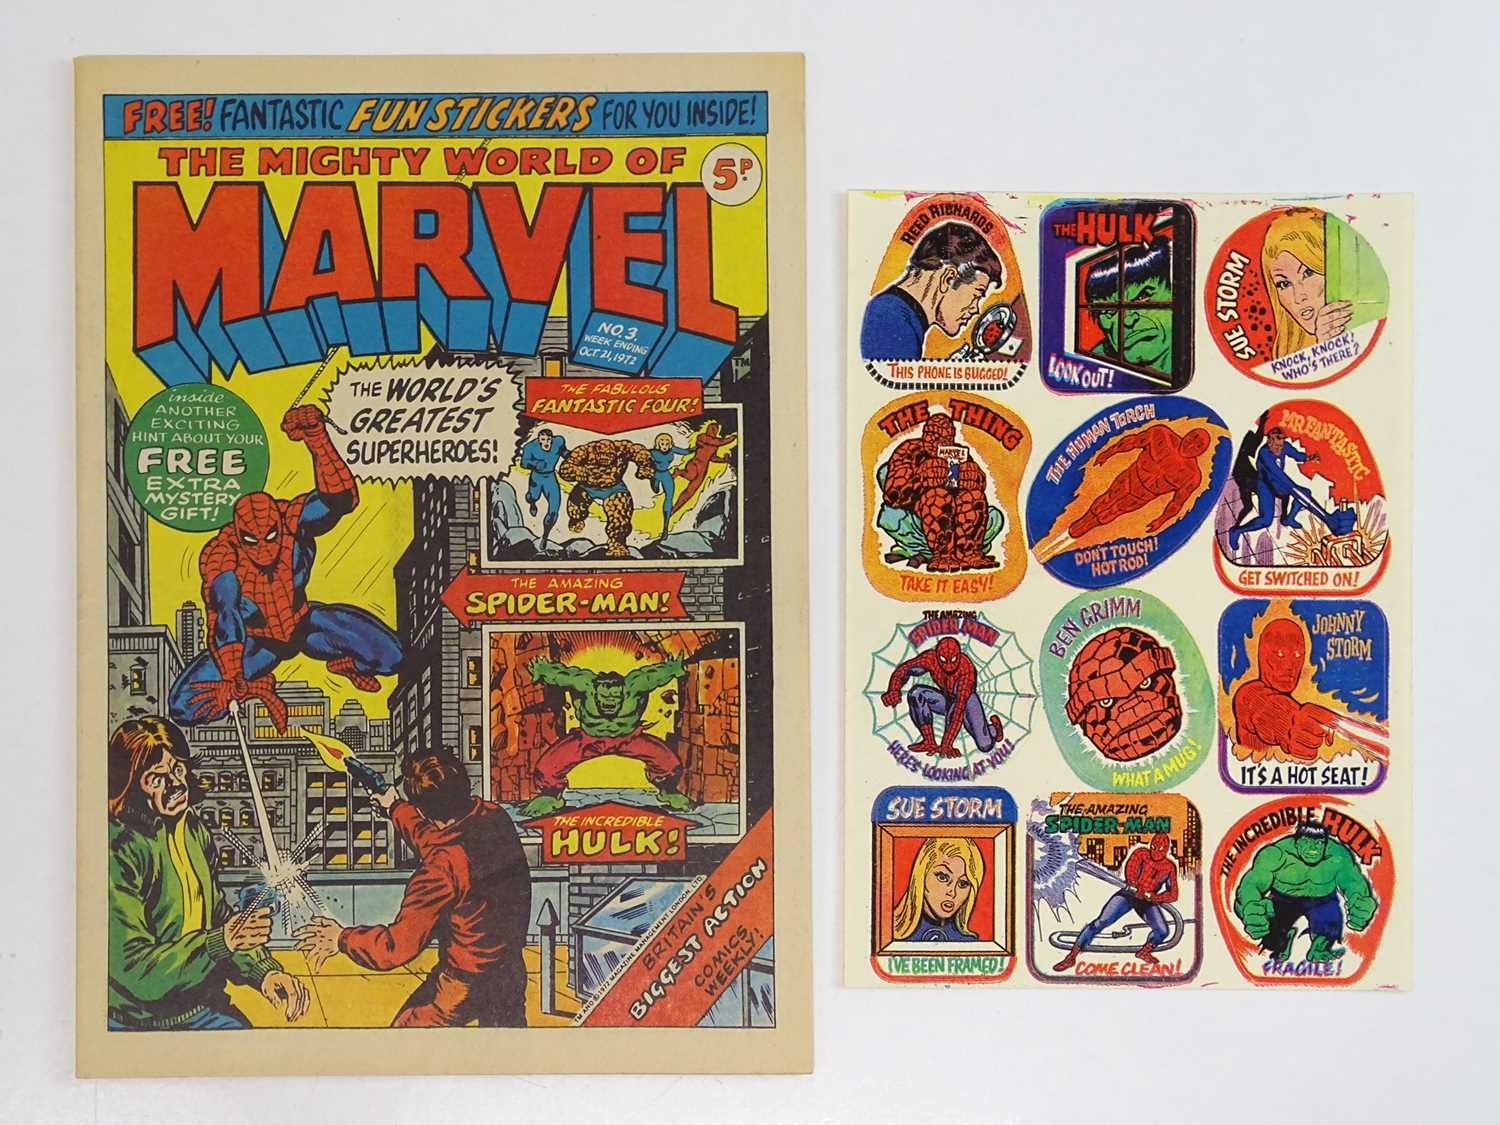 MIGHTY WORLD OF MARVEL #1 to 397 - (397 in Lot) - (1972/83 - BRITISH MARVEL) - Complete 397 issue - Image 2 of 3